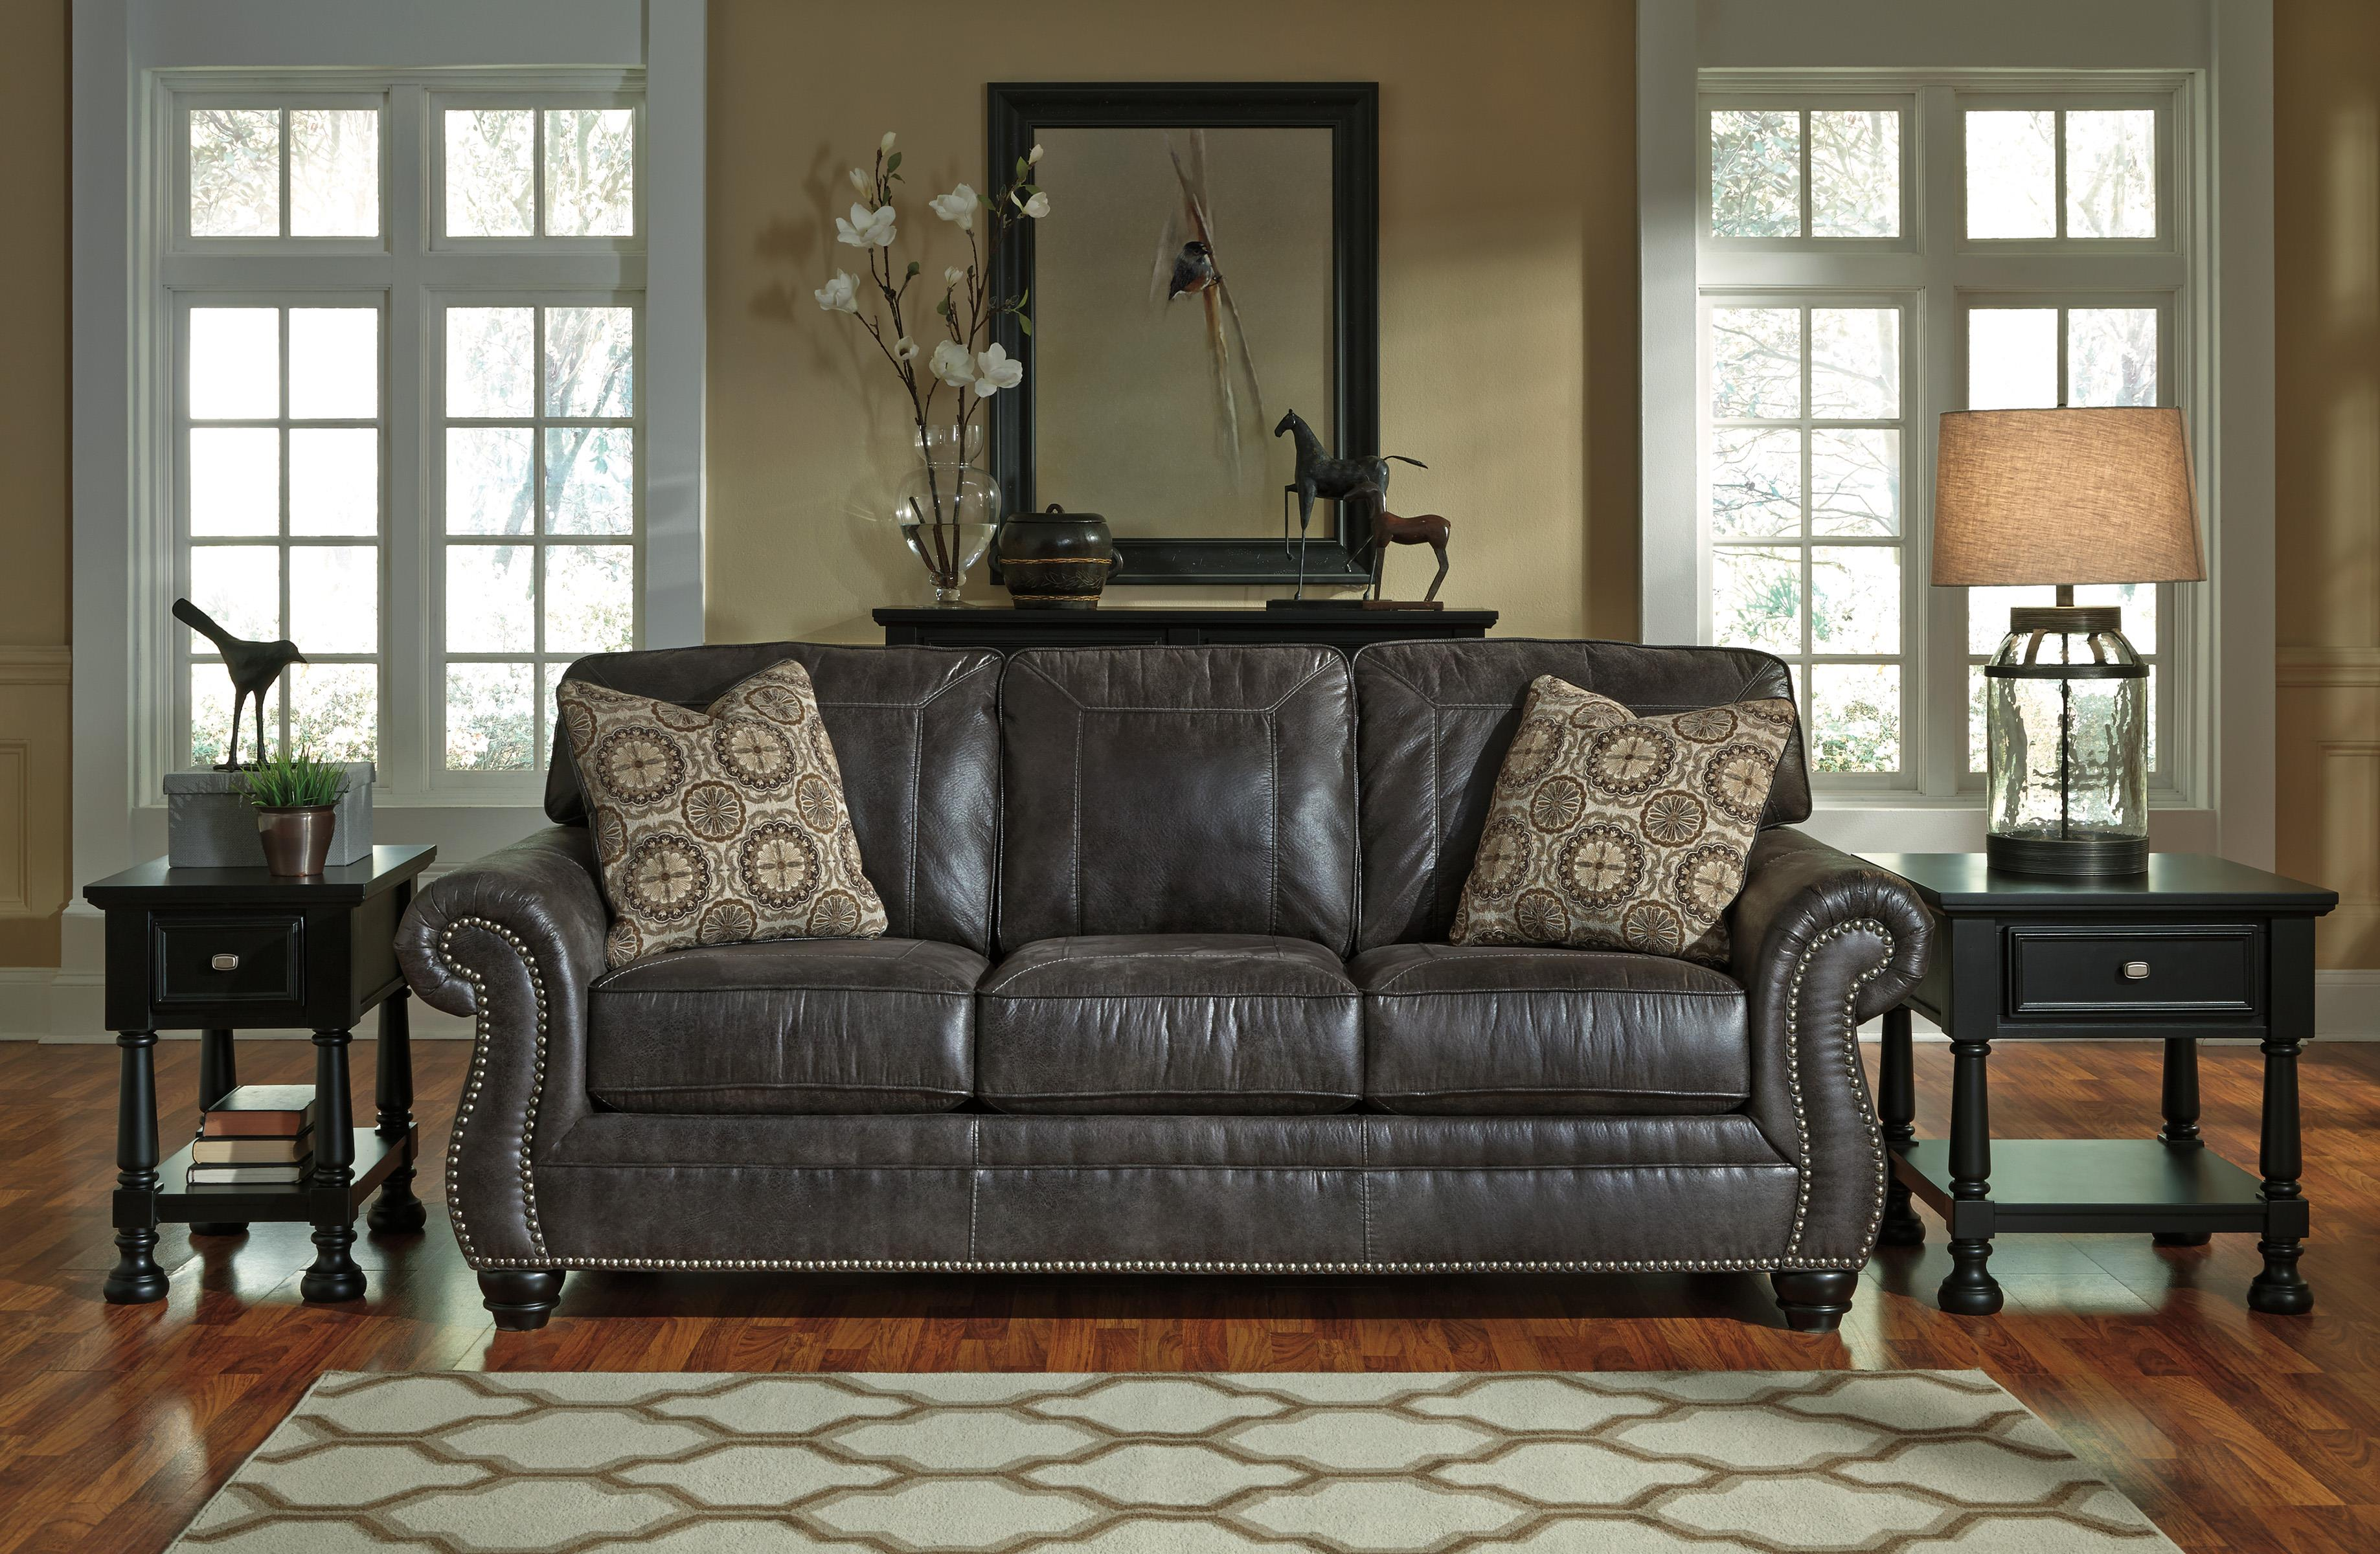 Distressed faux leather chair - Faux Leather Sofa With Rolled Arms And Nailhead Trim